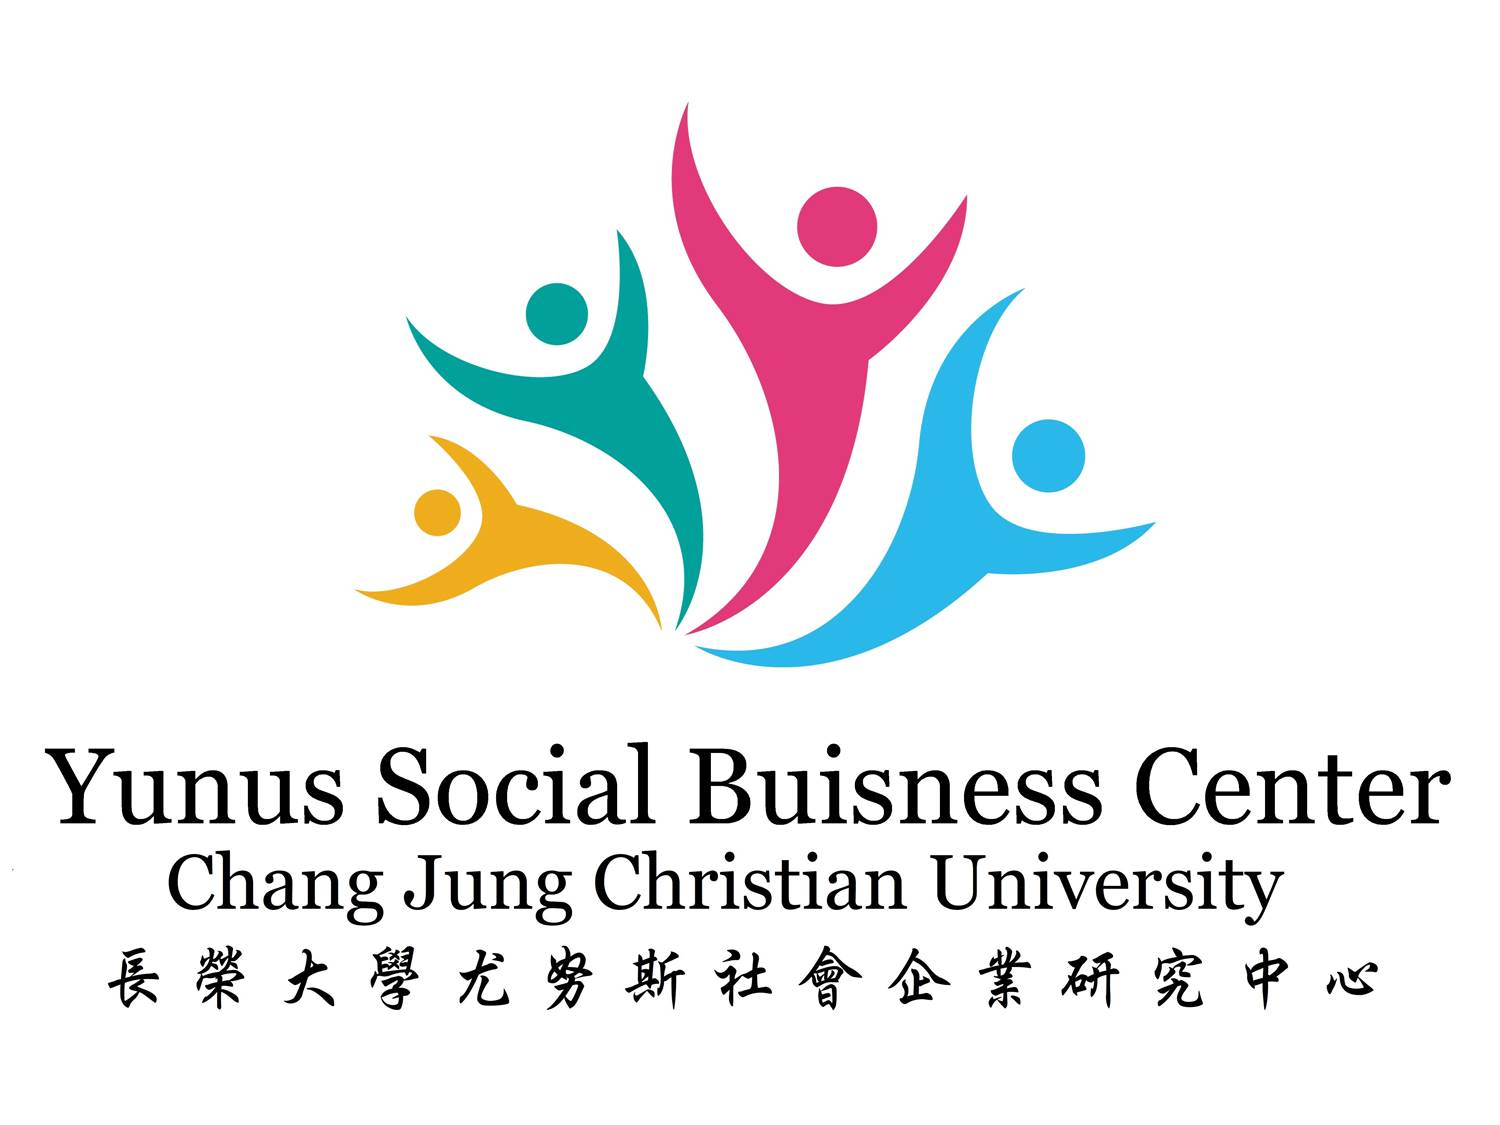 Yunus Social Business Center, Chang Jung Christian University